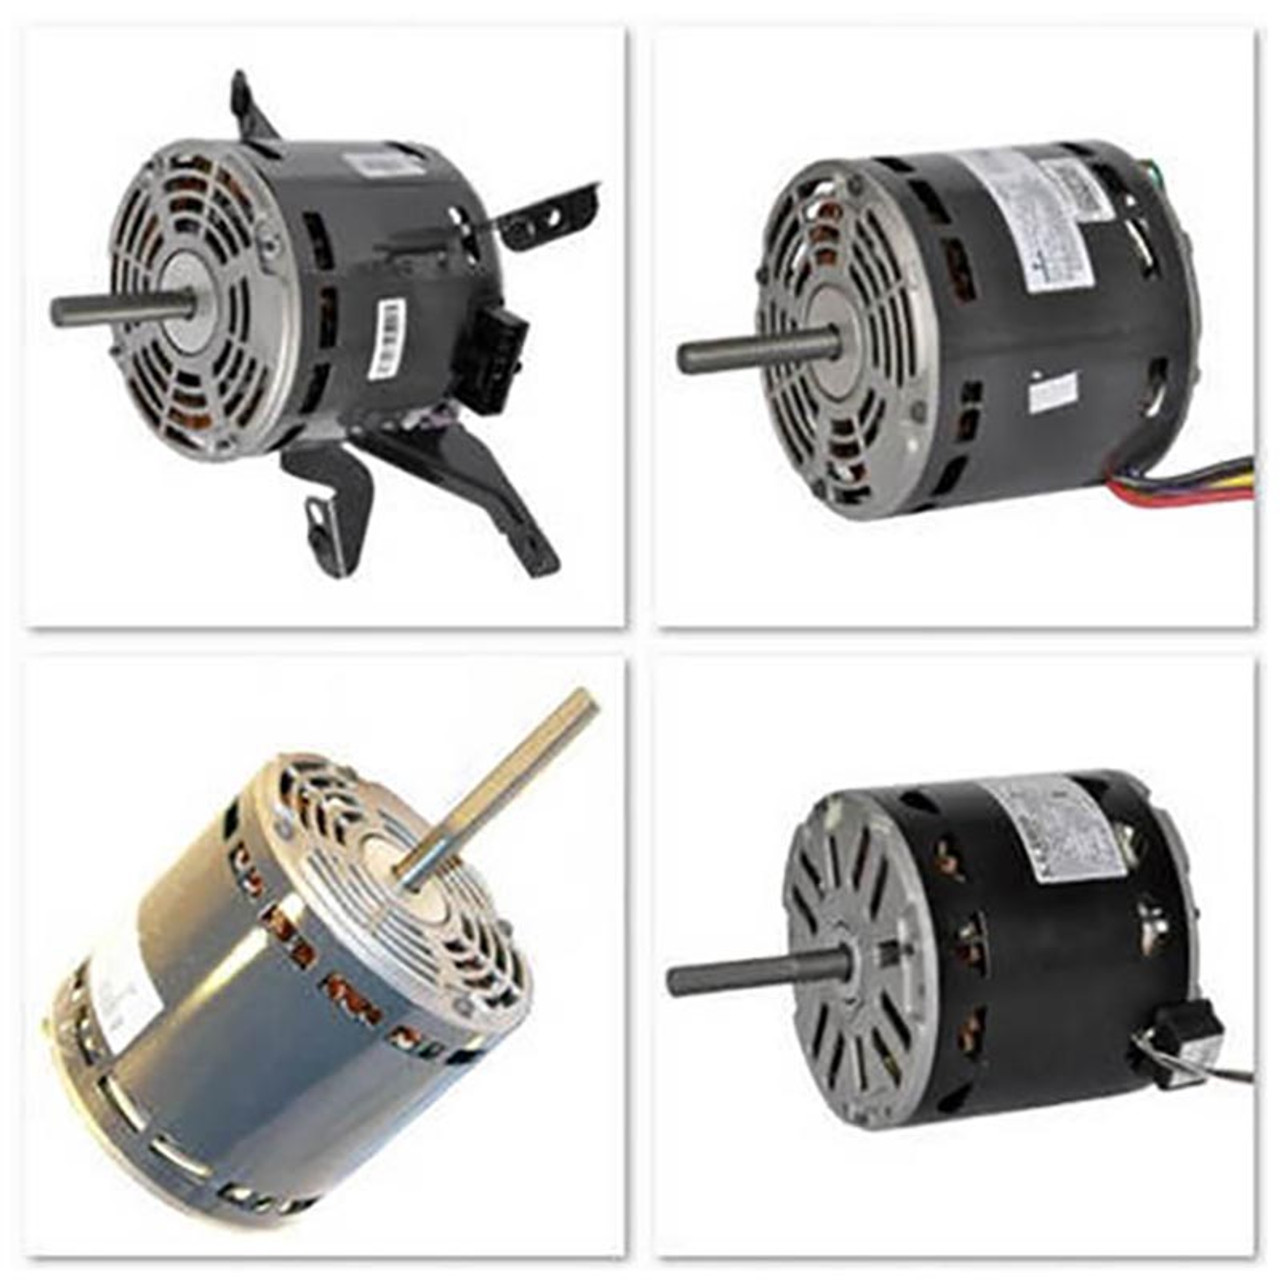 10M73 - Variable Speed Motor/Module